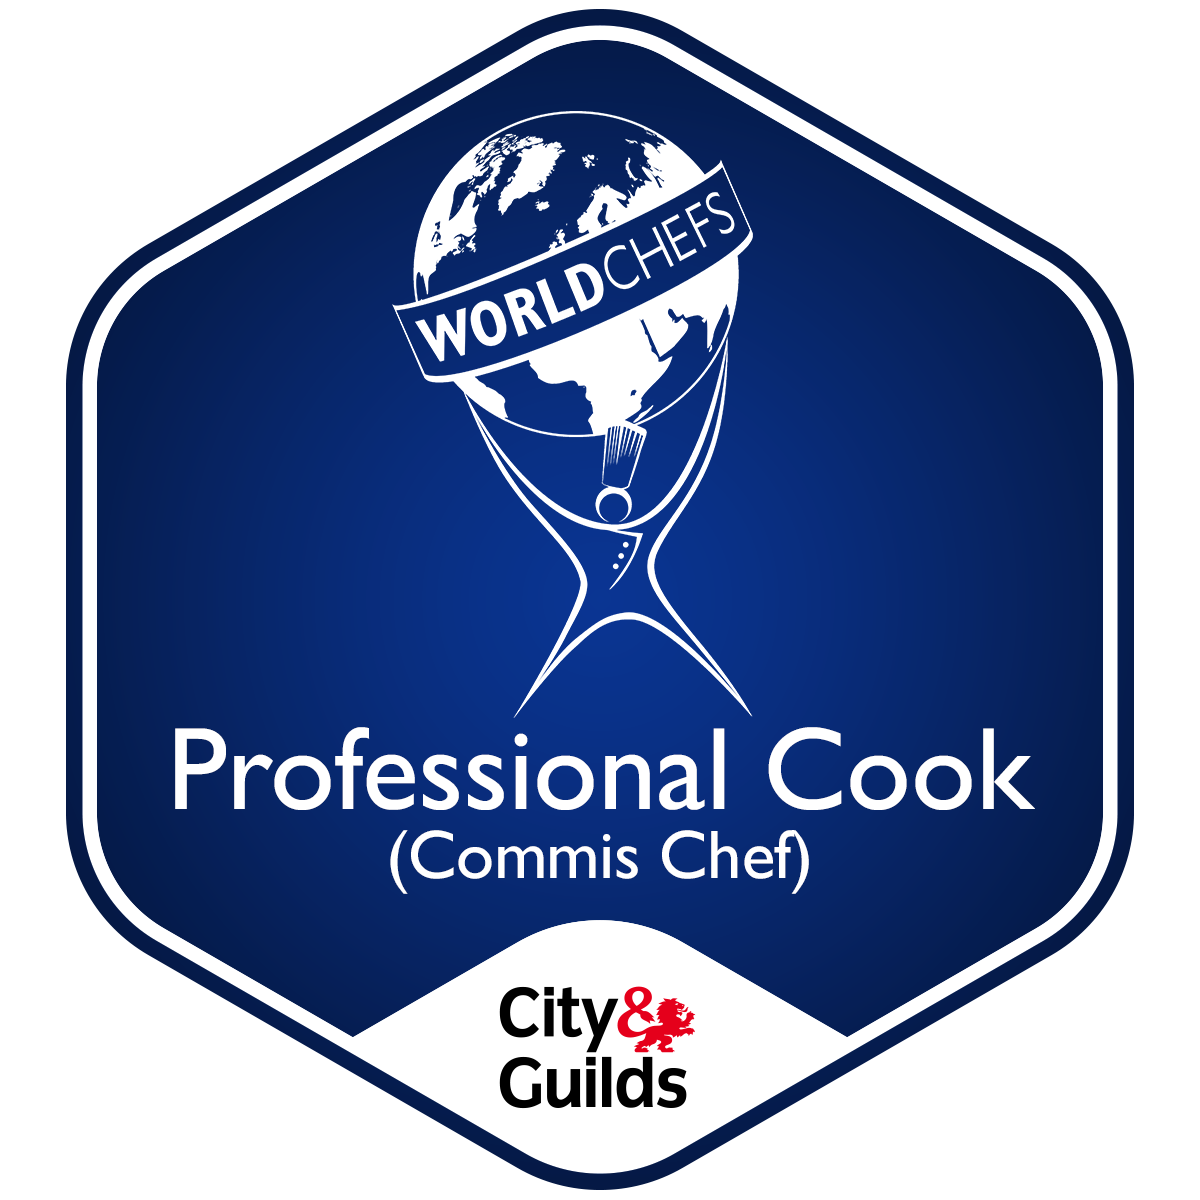 Worldchefs Certified Professional Cook (Commis Chef)